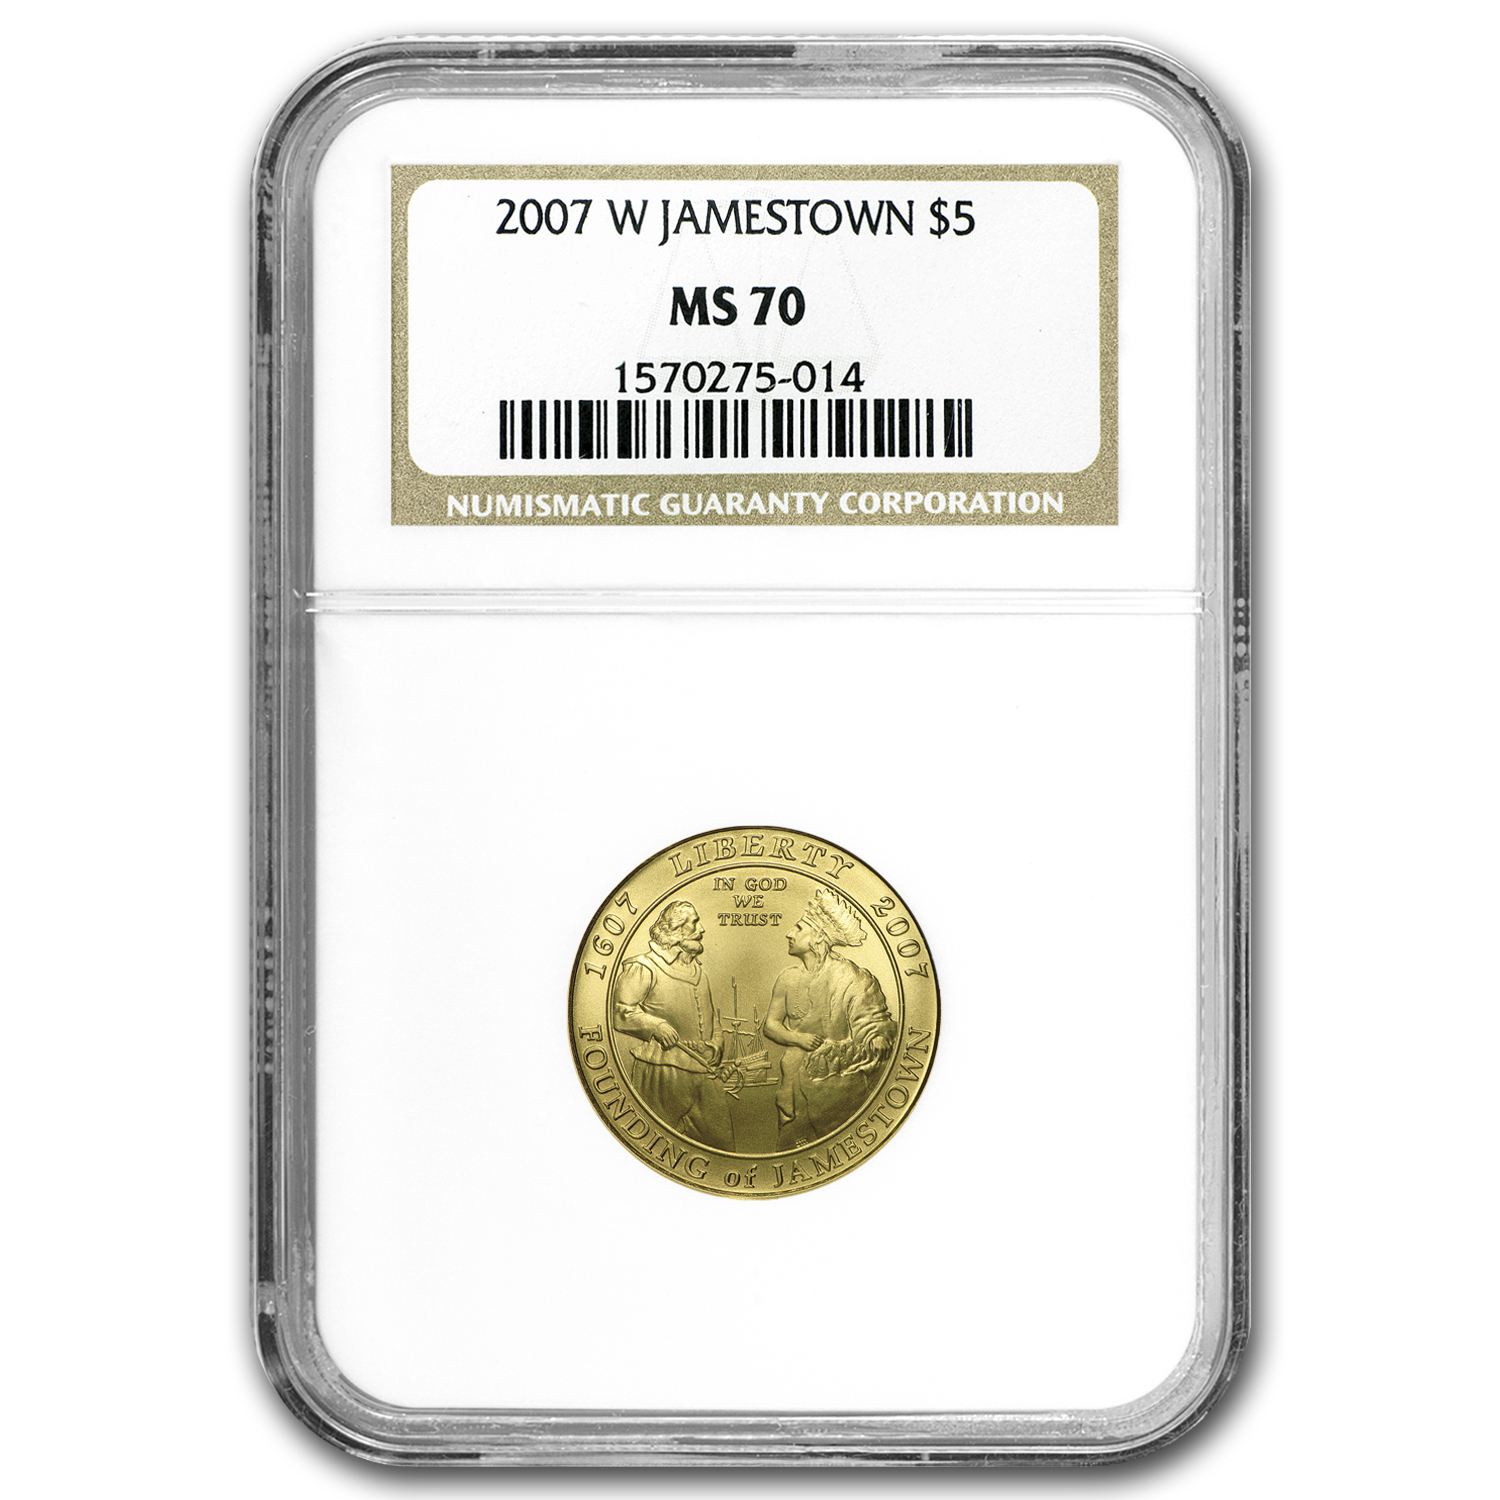 2007-W Jamestown - $5 Gold Commemorative - MS-70 NGC